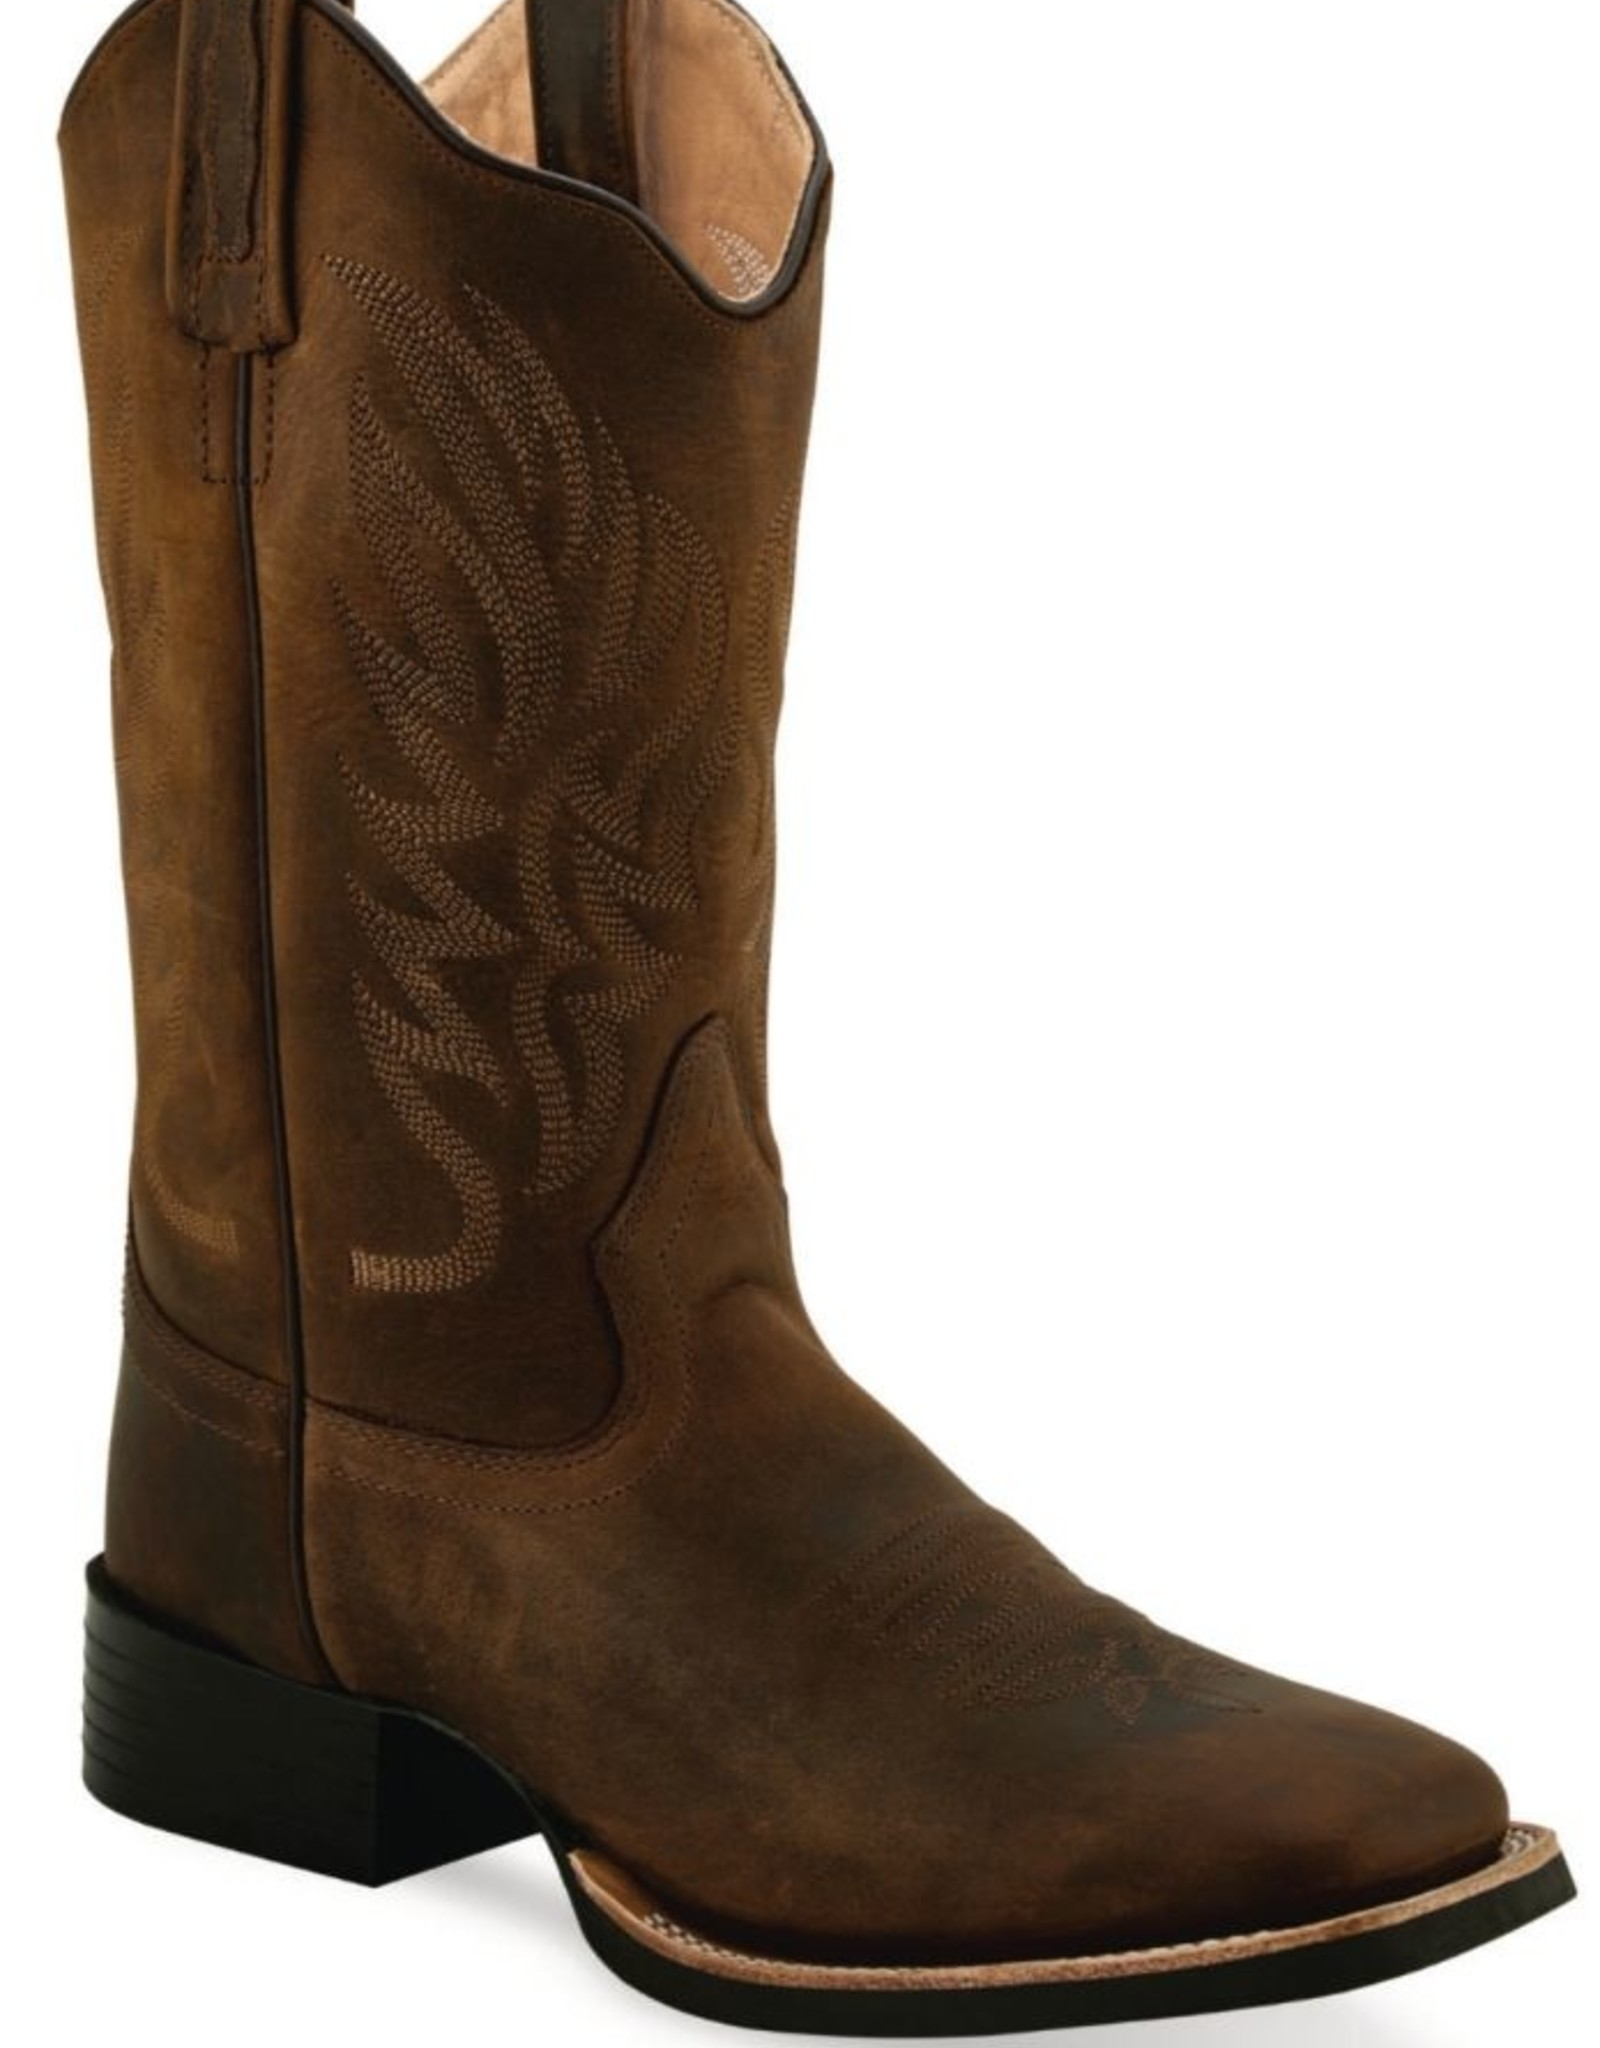 Old West Old West Poker Alice - Maat 37 t/m 43